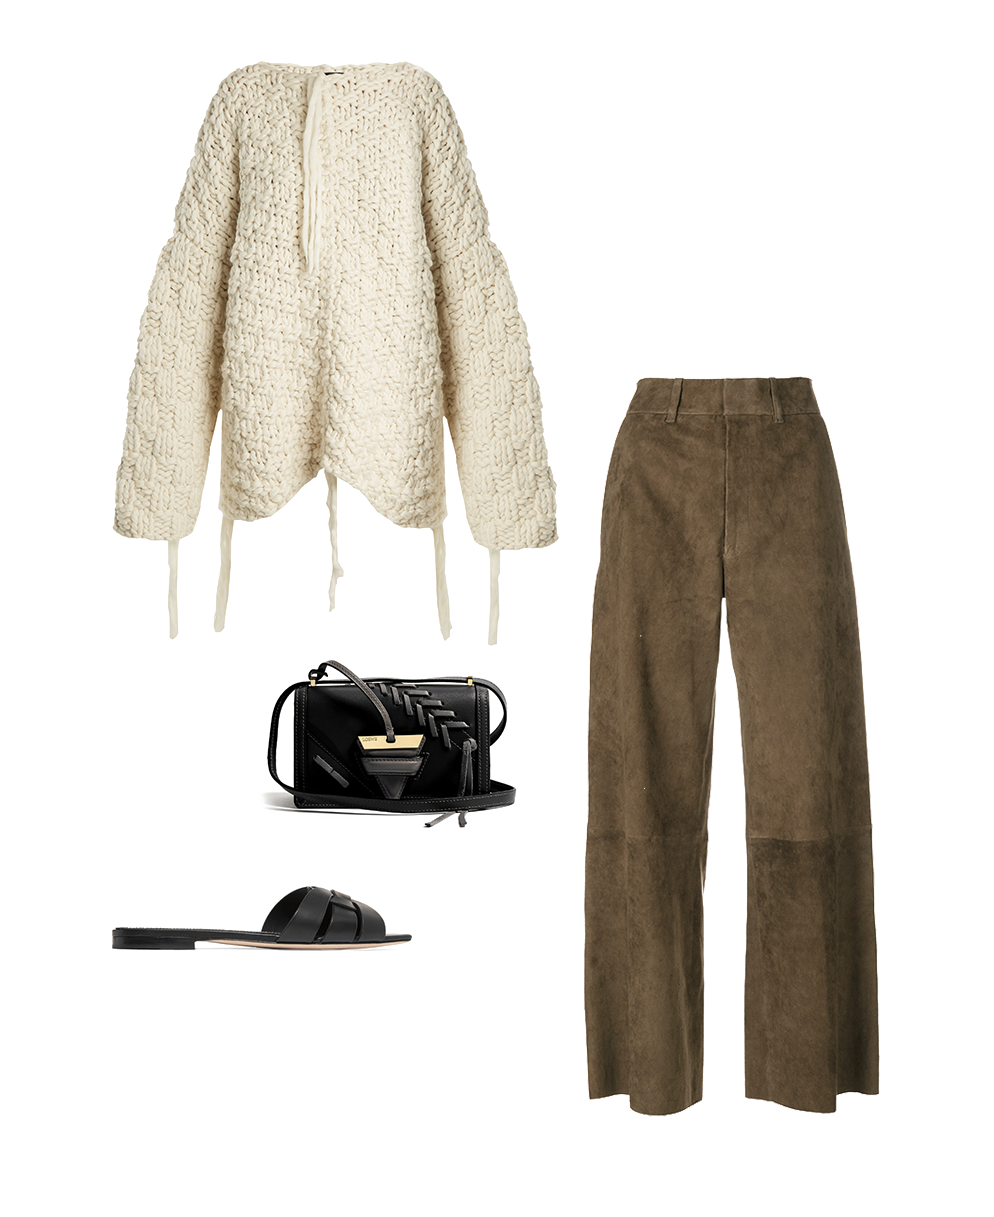 Joseph sweater and trousers, Loewe bag, Saint Laurent slipper.png